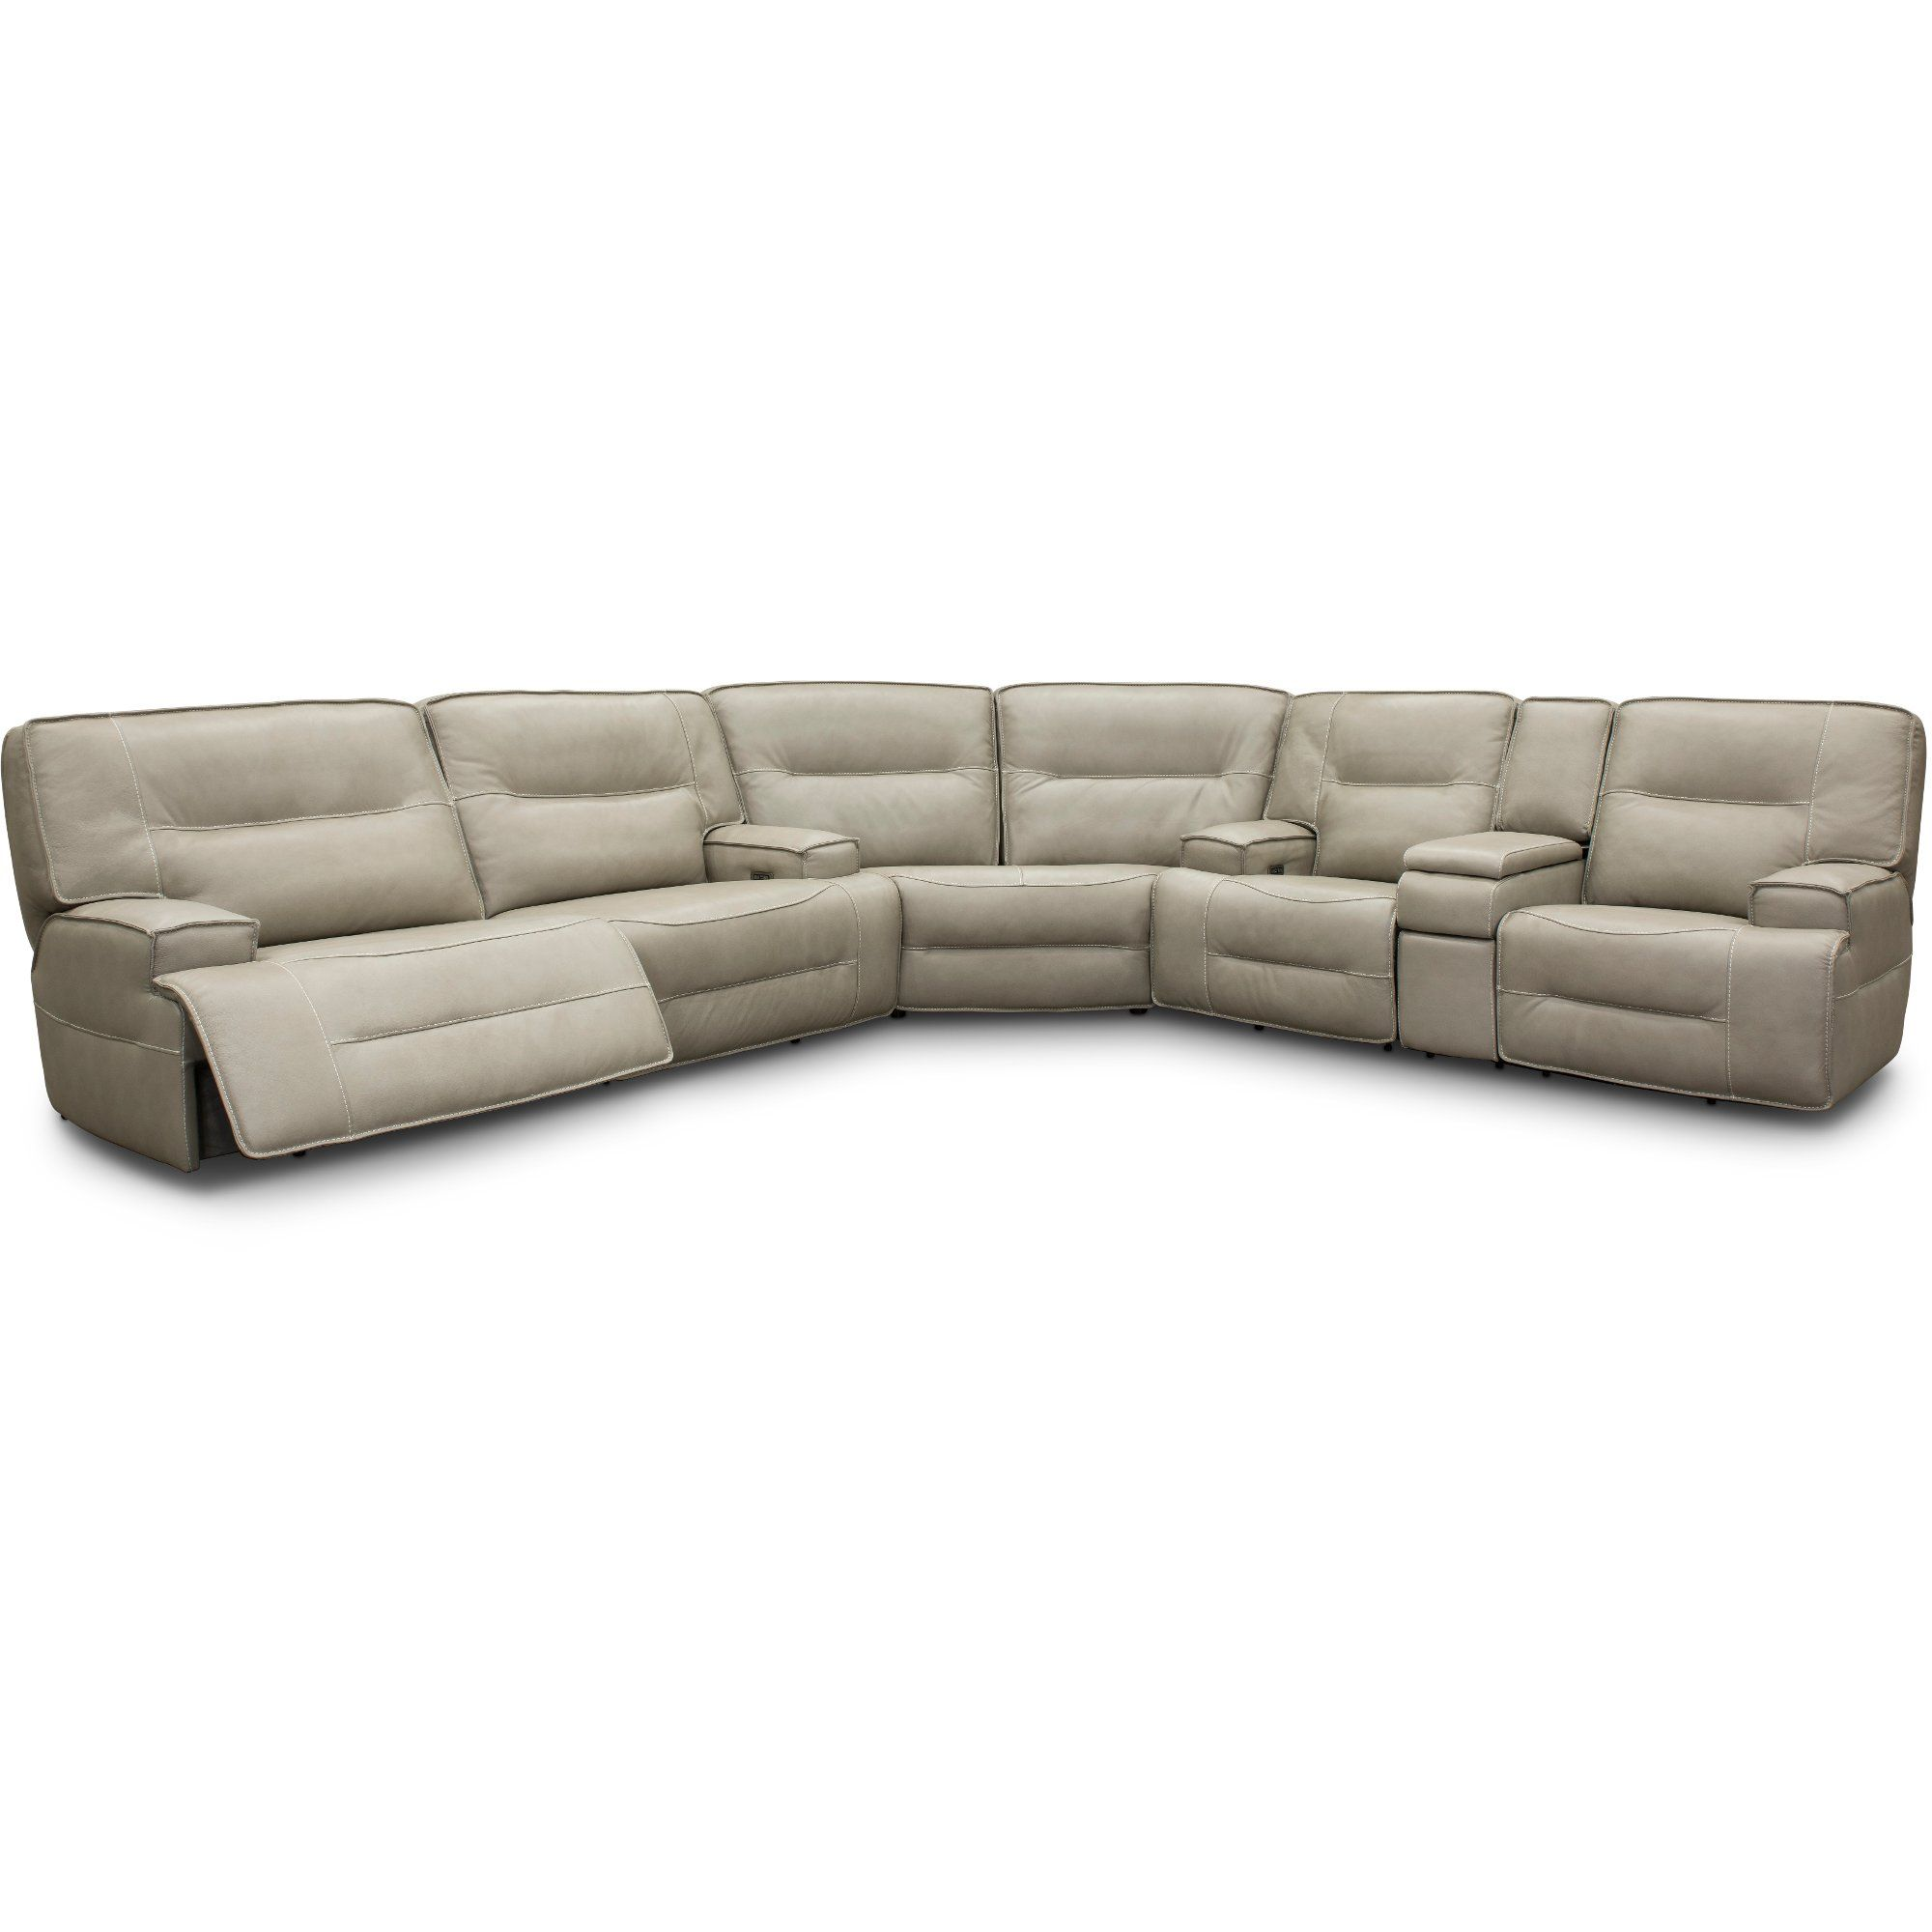 Astounding Dove Beige Leather Match Power Reclining Sectional Sofa With Pdpeps Interior Chair Design Pdpepsorg